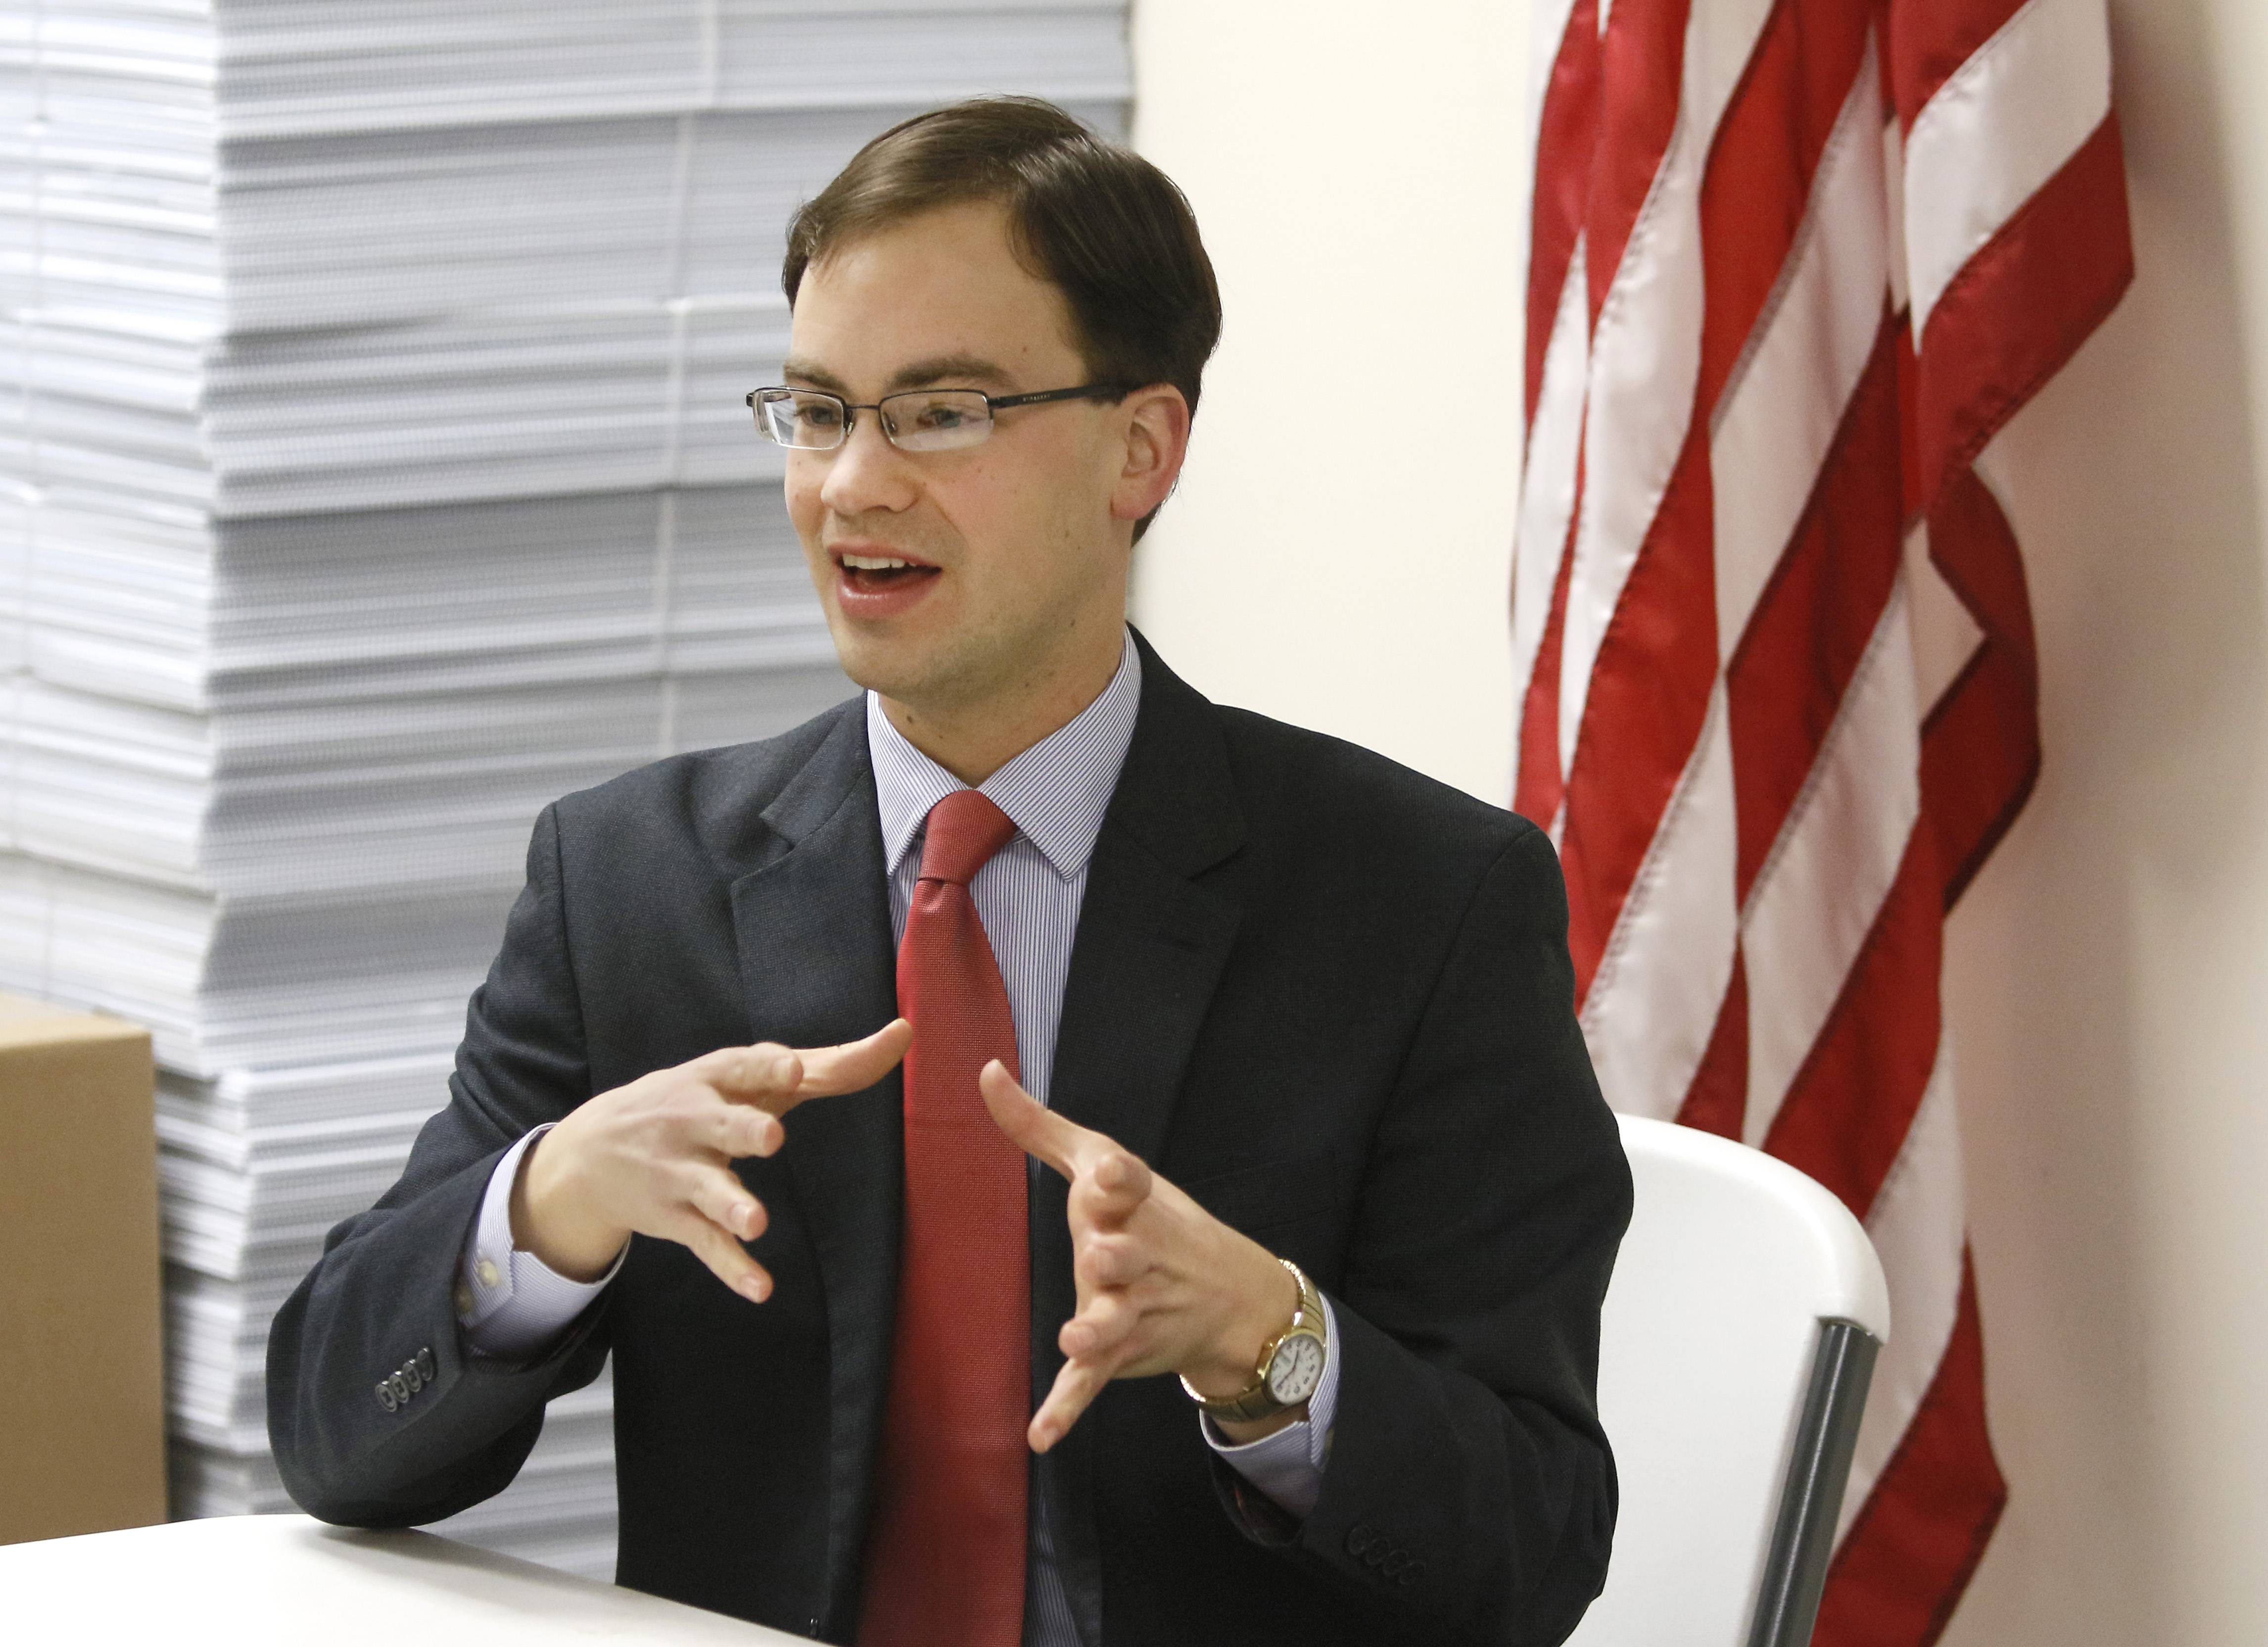 David Olsen, 27, of Downers Grove is the front-runner to fill the 81st state House District vacancy created by the resignation of Ron Sandack, Republican leaders say.